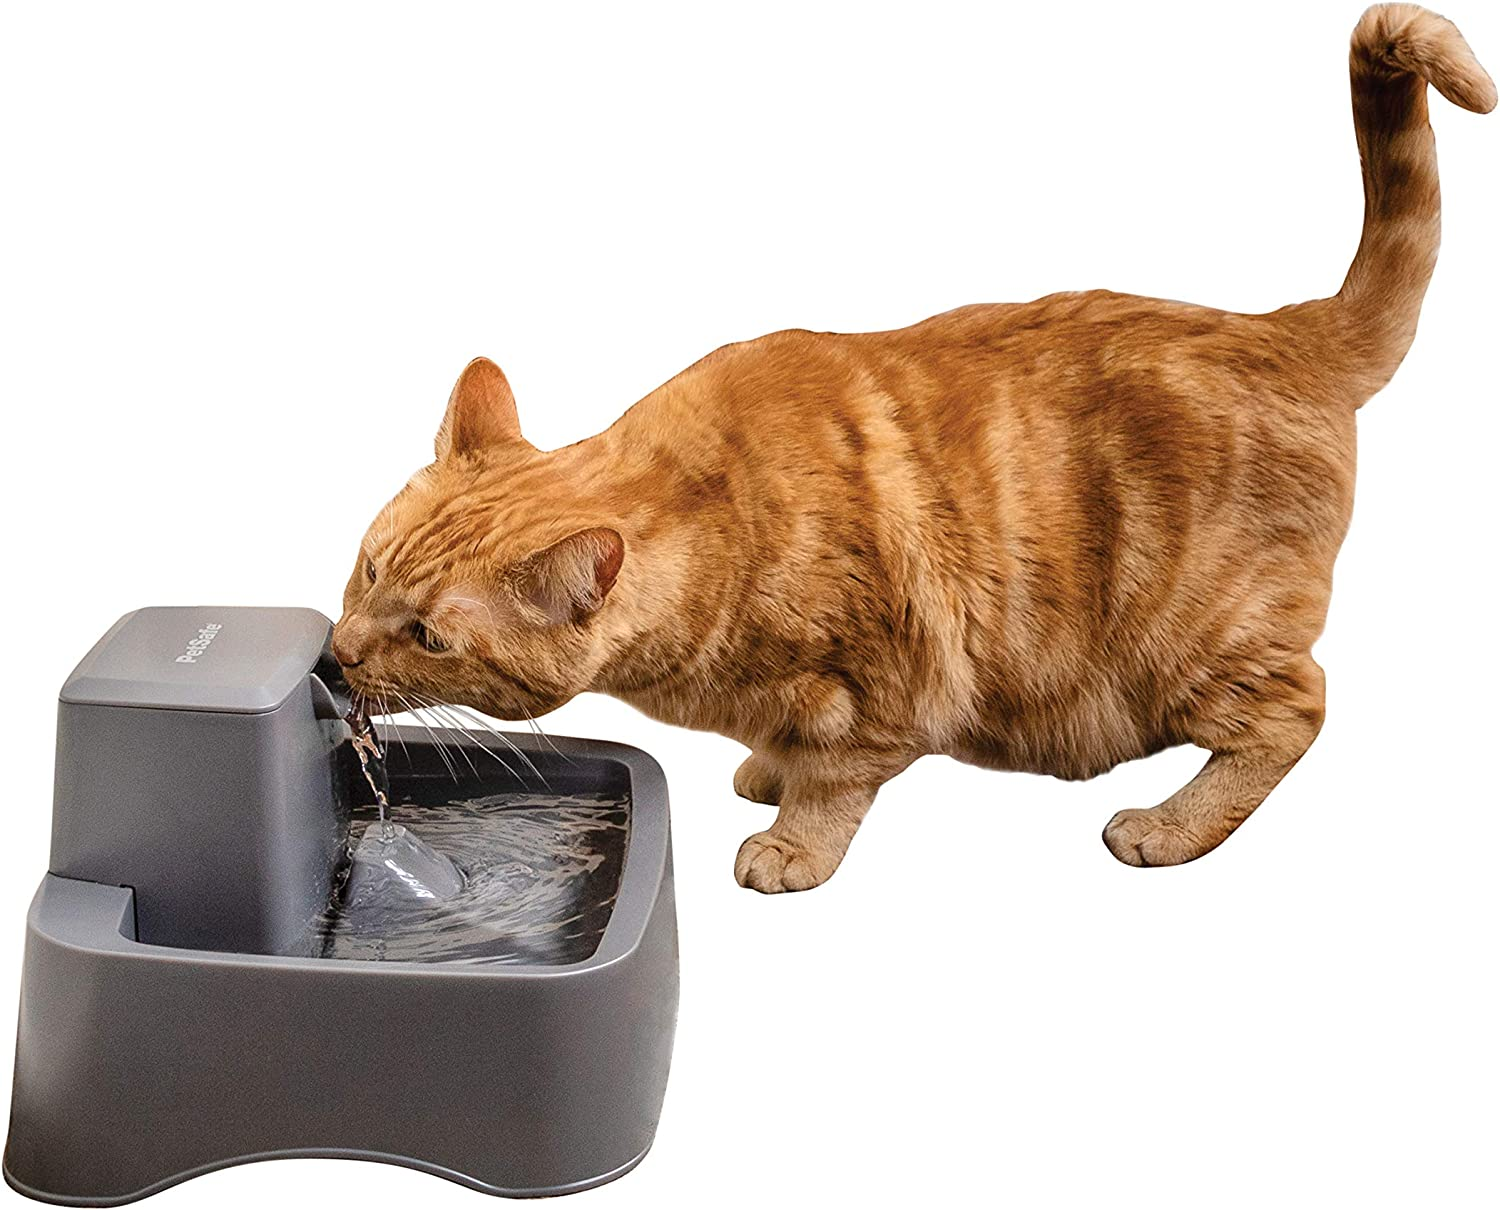 PetSafe Drinkwell 1/2, 1, or 2 Gallon Pet Fountains, Best for Cats, Dogs and Multiple Pets, Adjustable Stream, Fresh Water Dispenser, Easy to Clean Design, 2 Filters Included